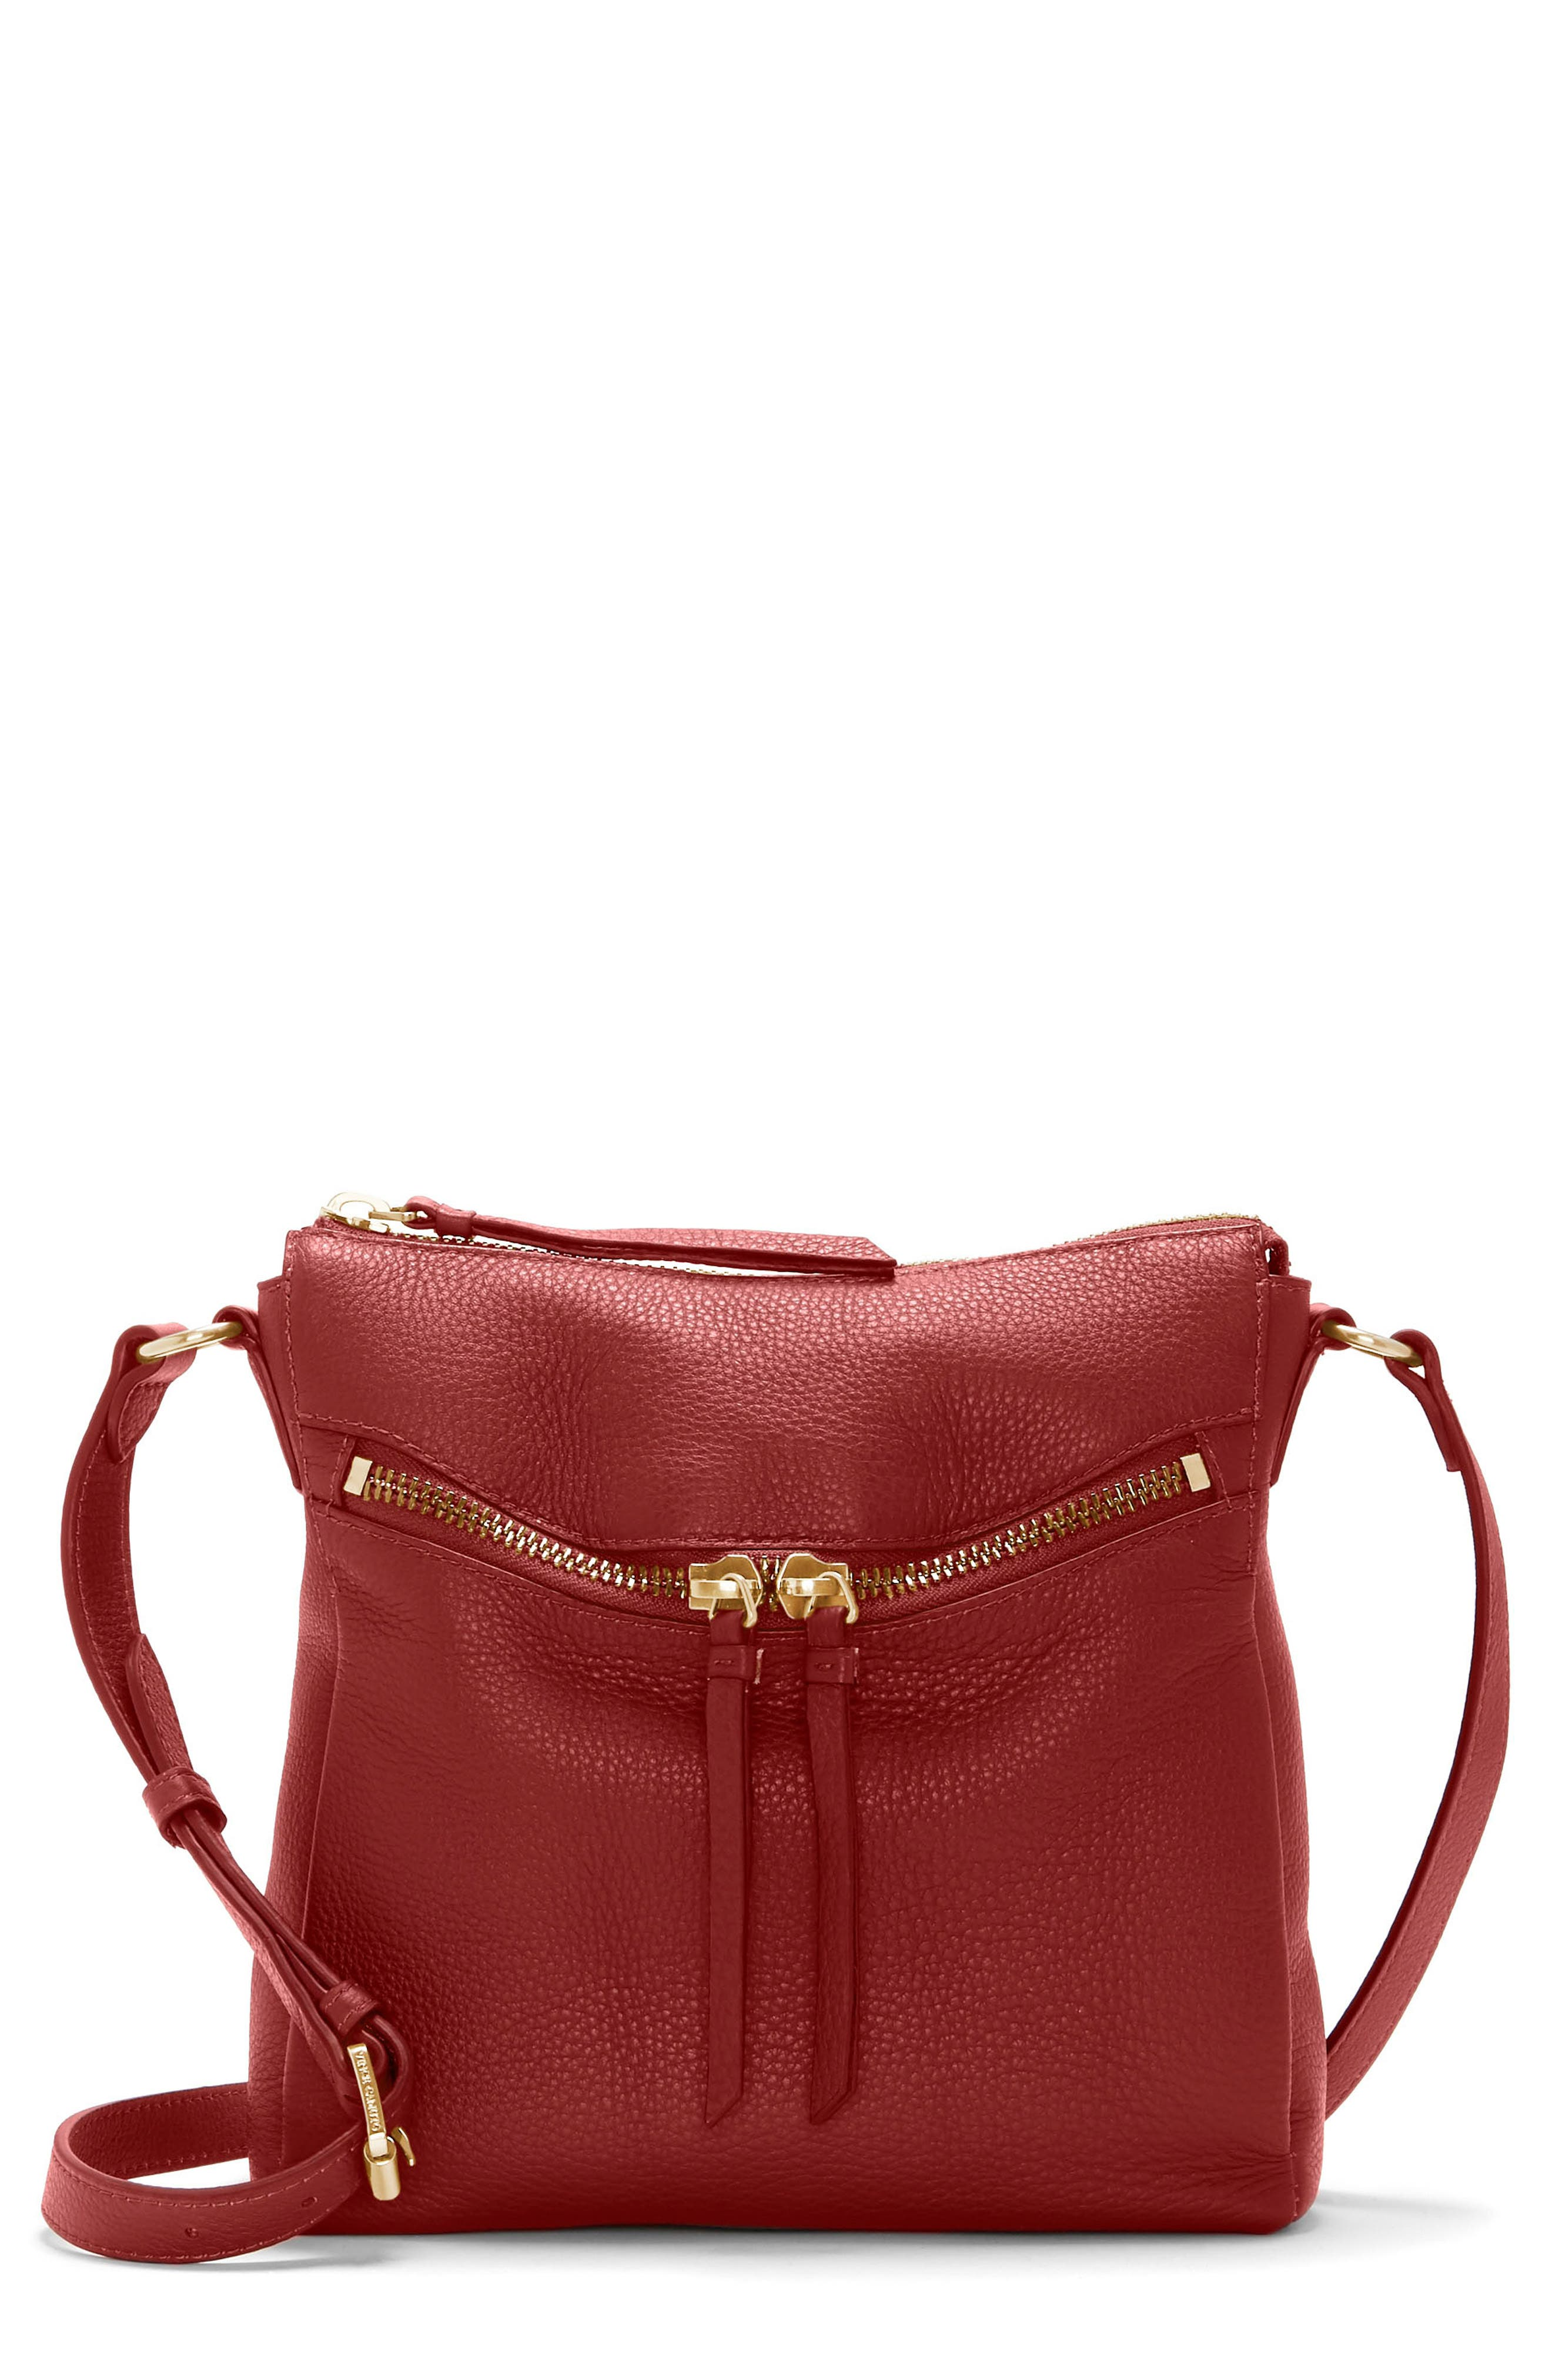 Staja Leather Crossbody Bag,                         Main,                         color, PEPPER BERRY